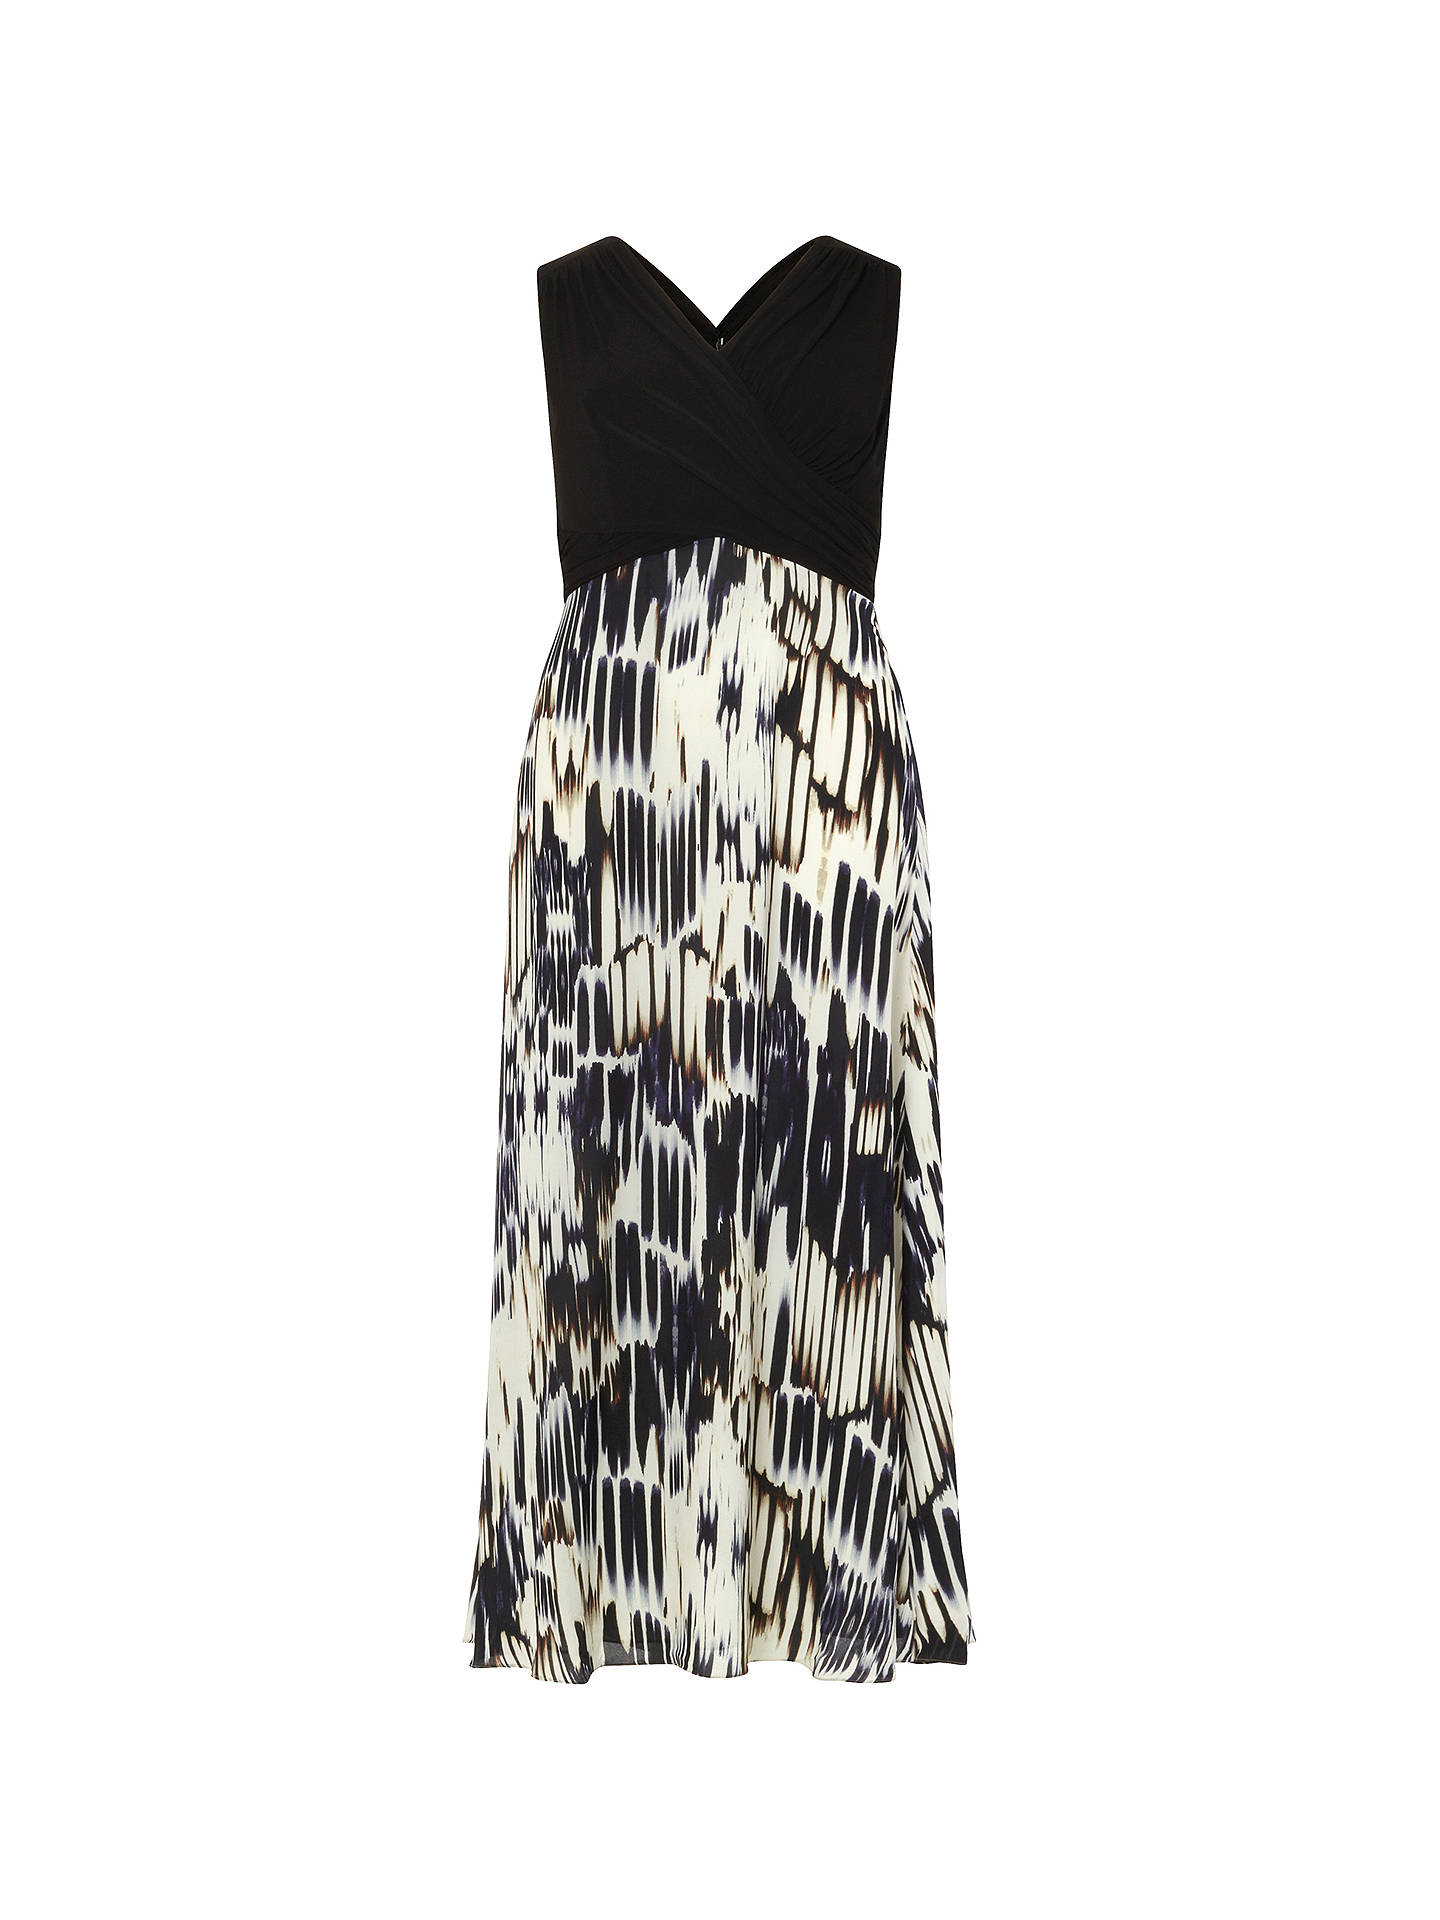 BuyStudio 8 Federica Maxi Dress, Black/White, 12 Online at johnlewis.com